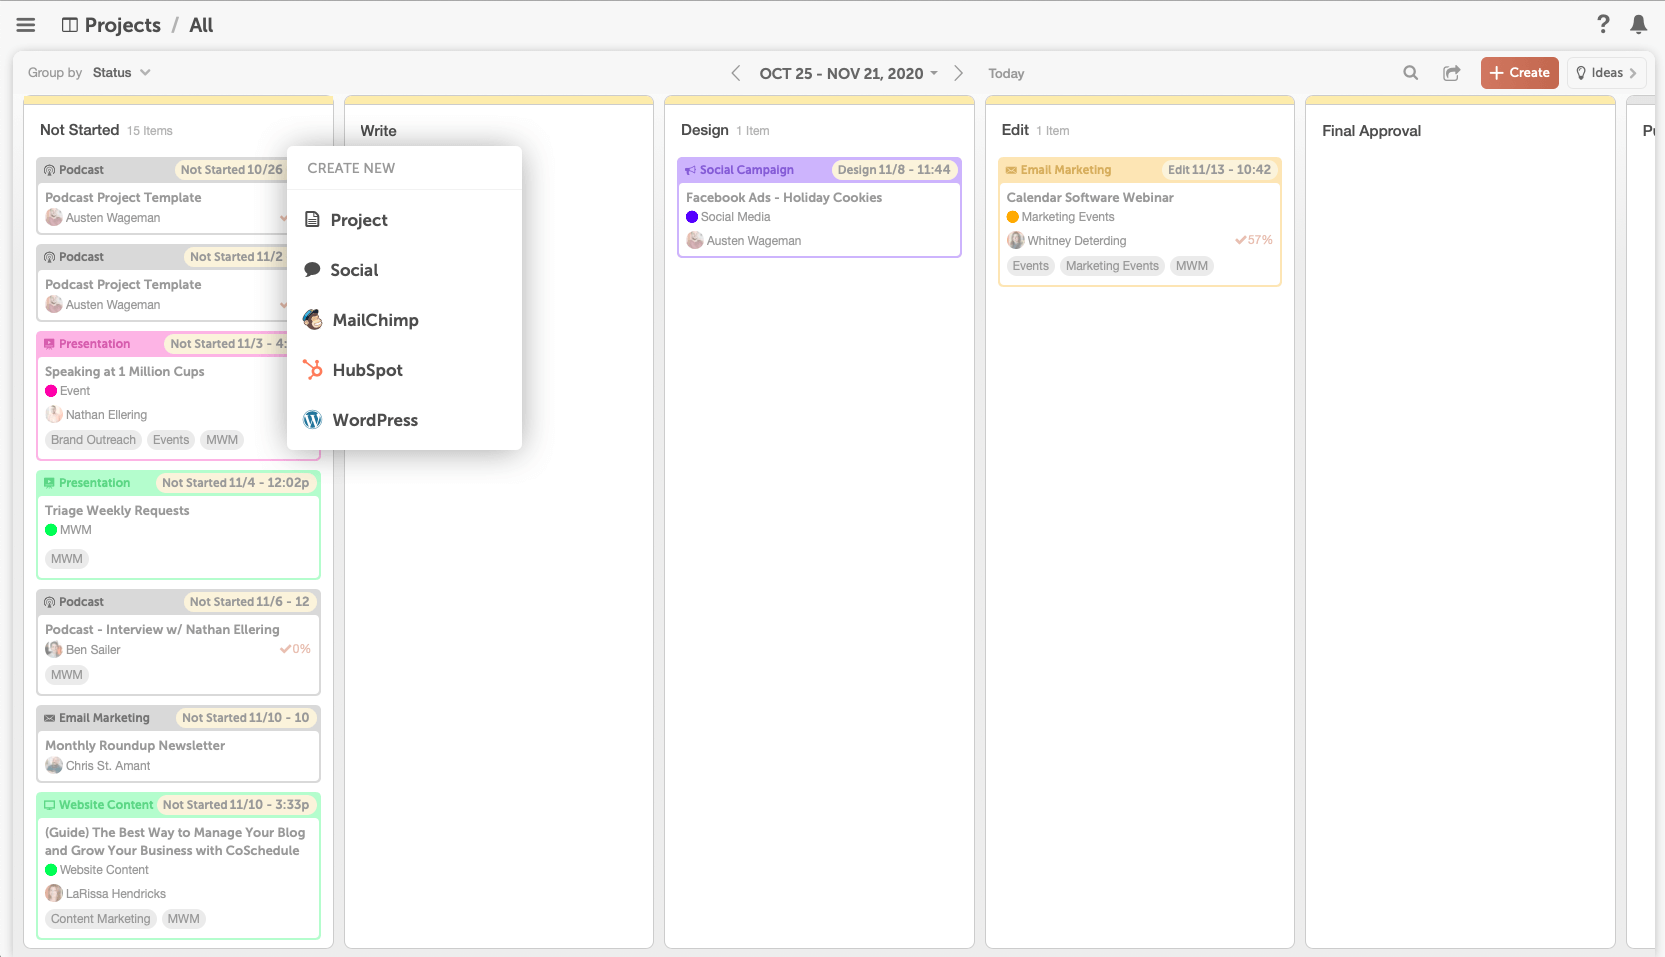 Adding a project to the kanban dashboard